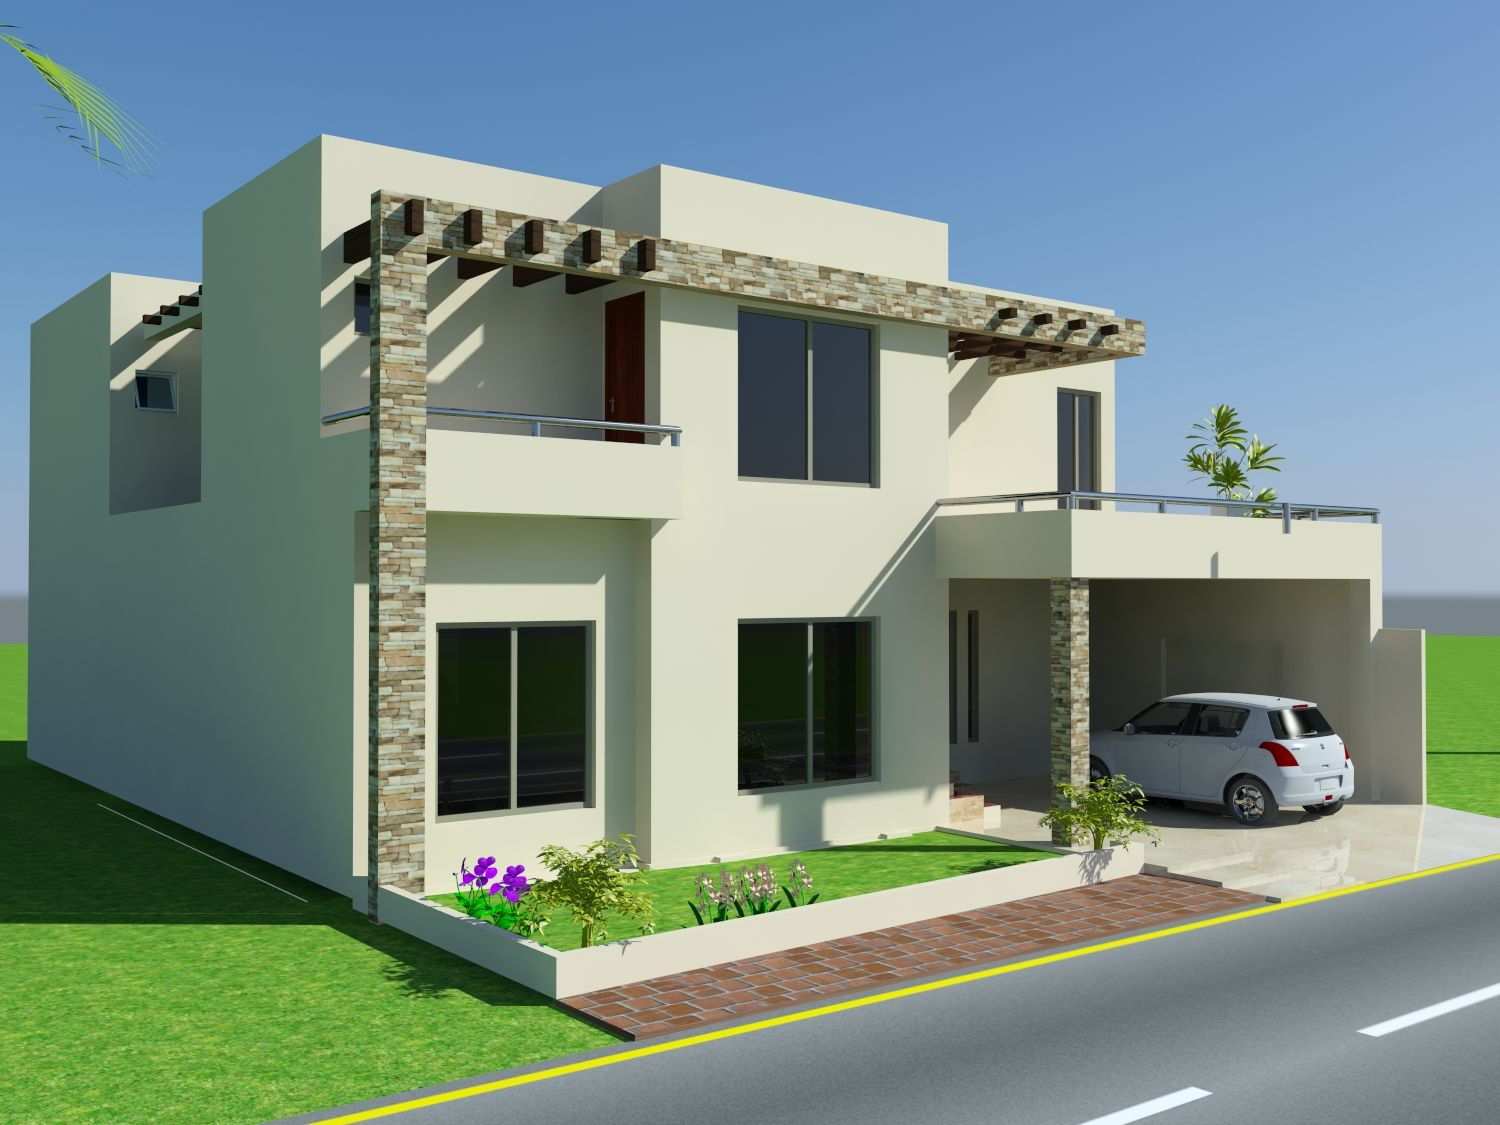 3d front elevation com 10 marla house design mian wali